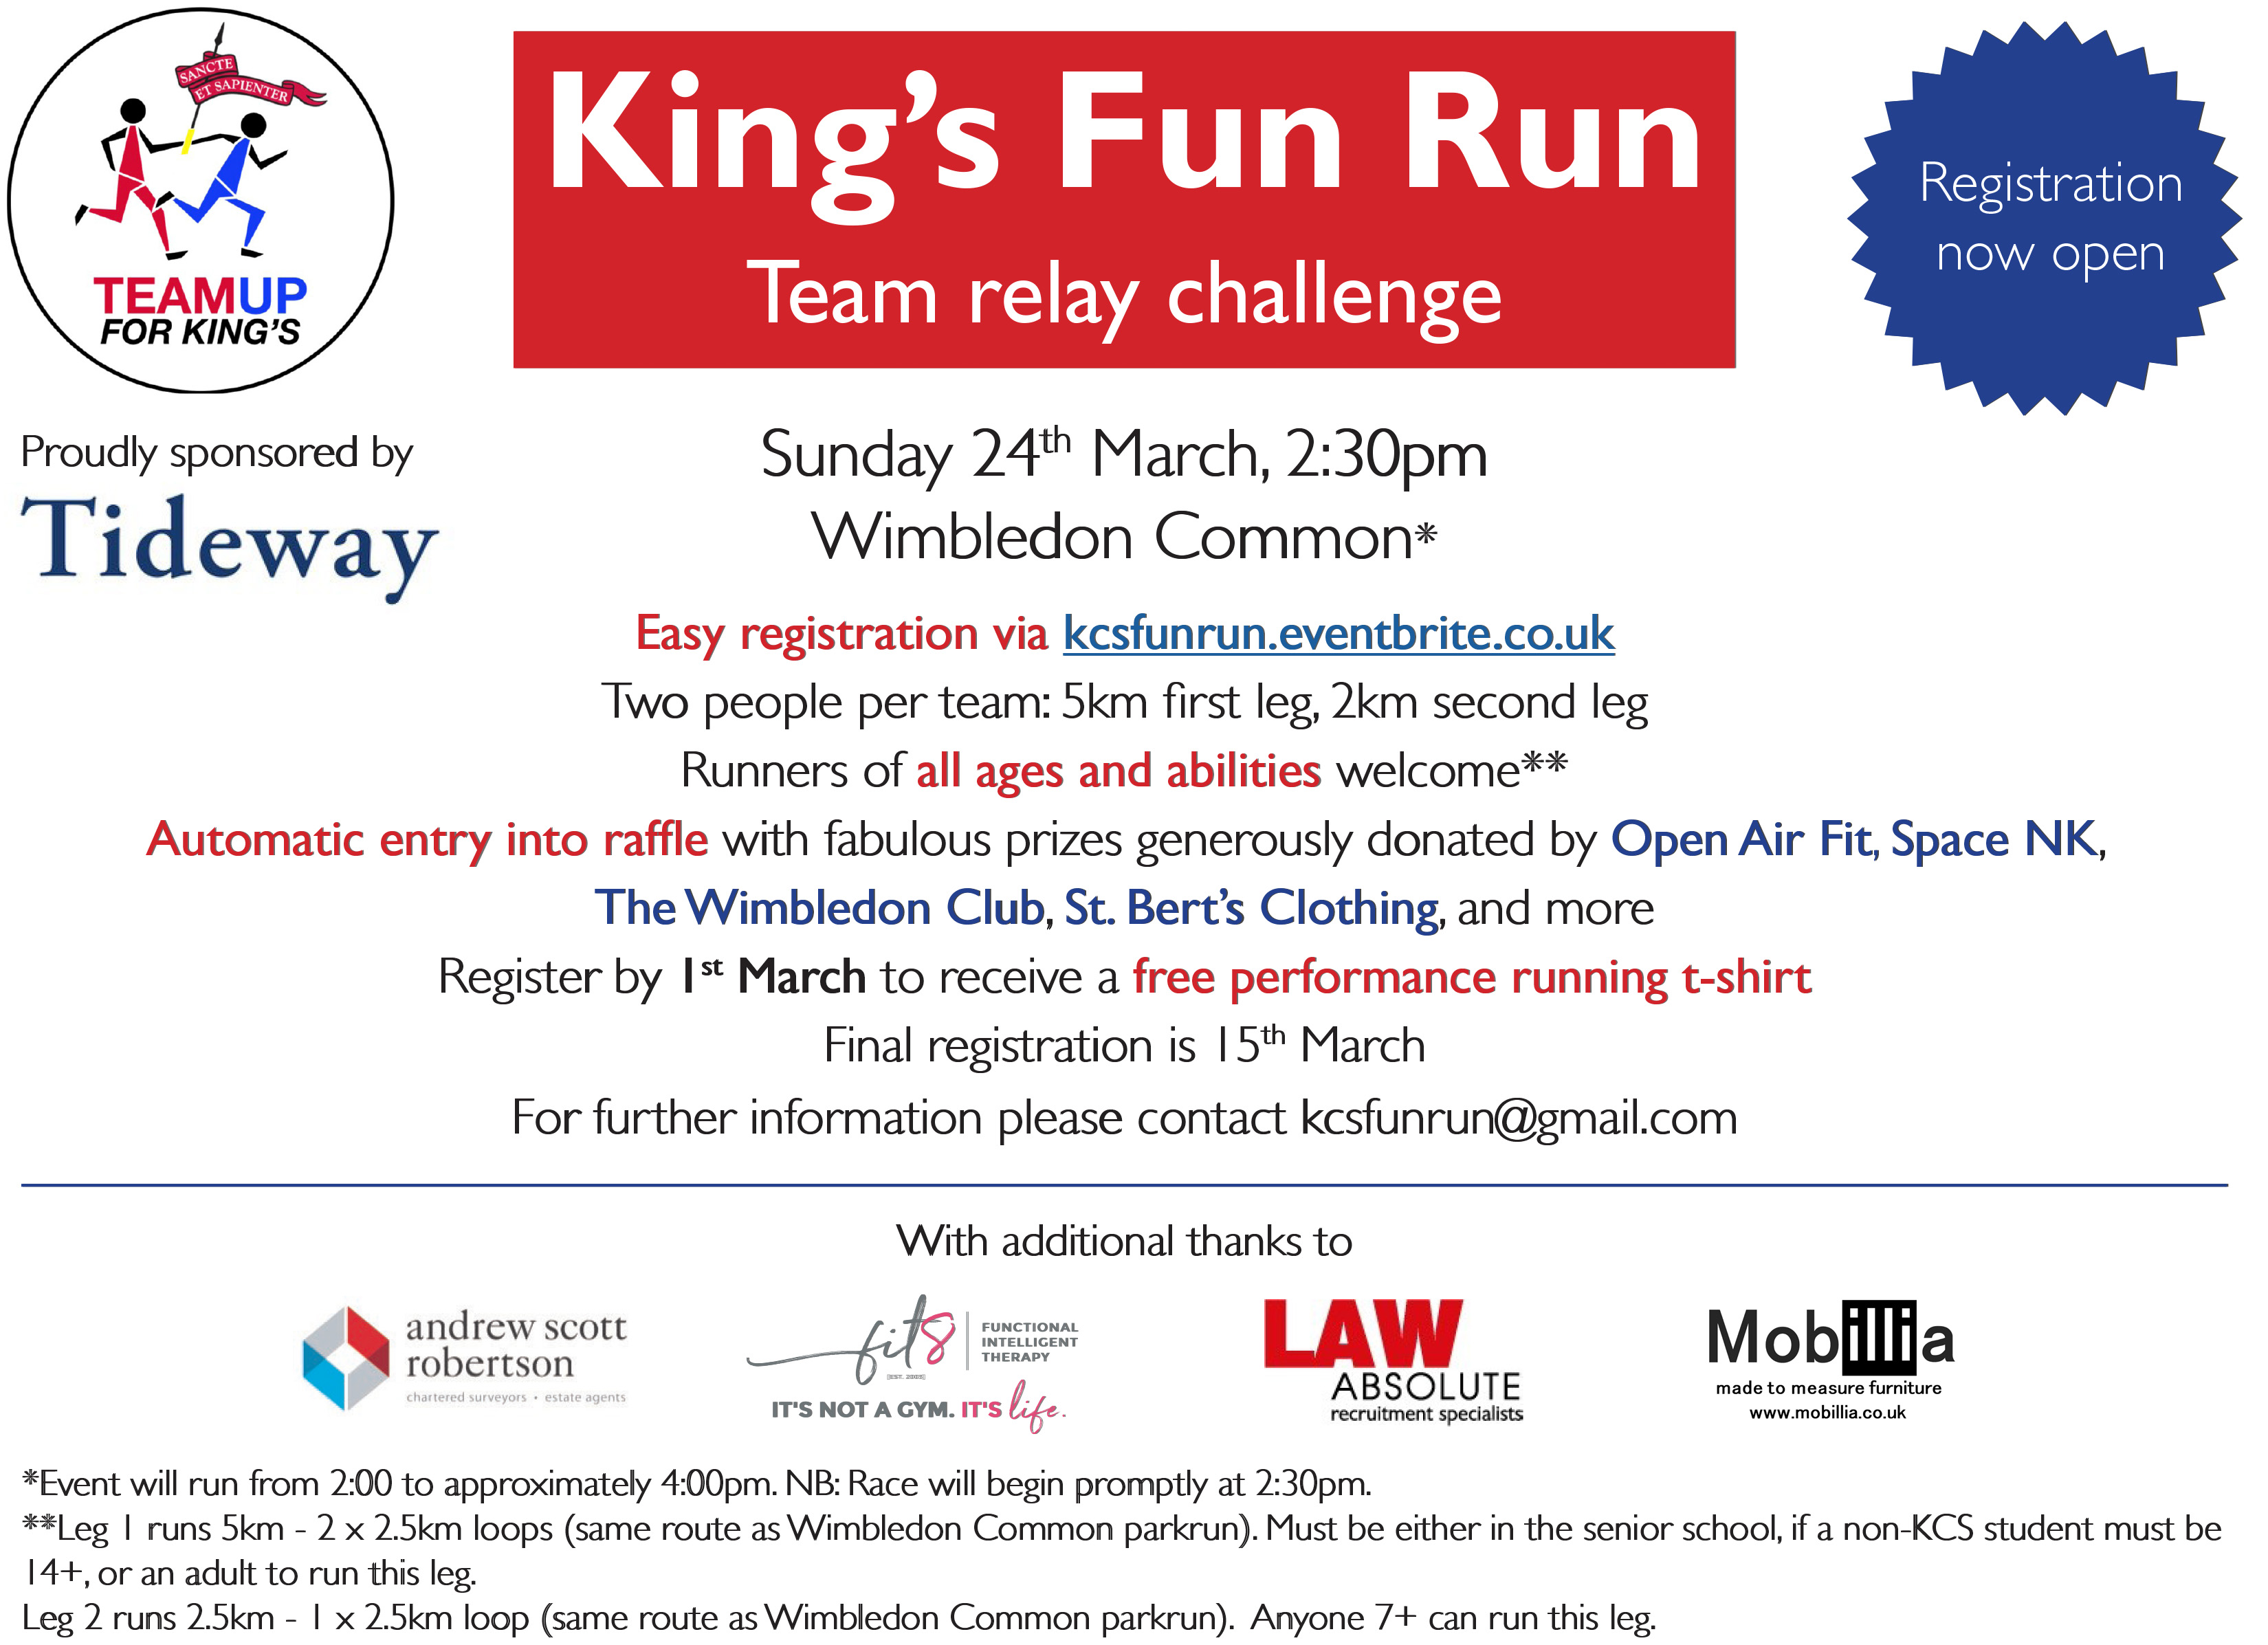 King's Fun Run